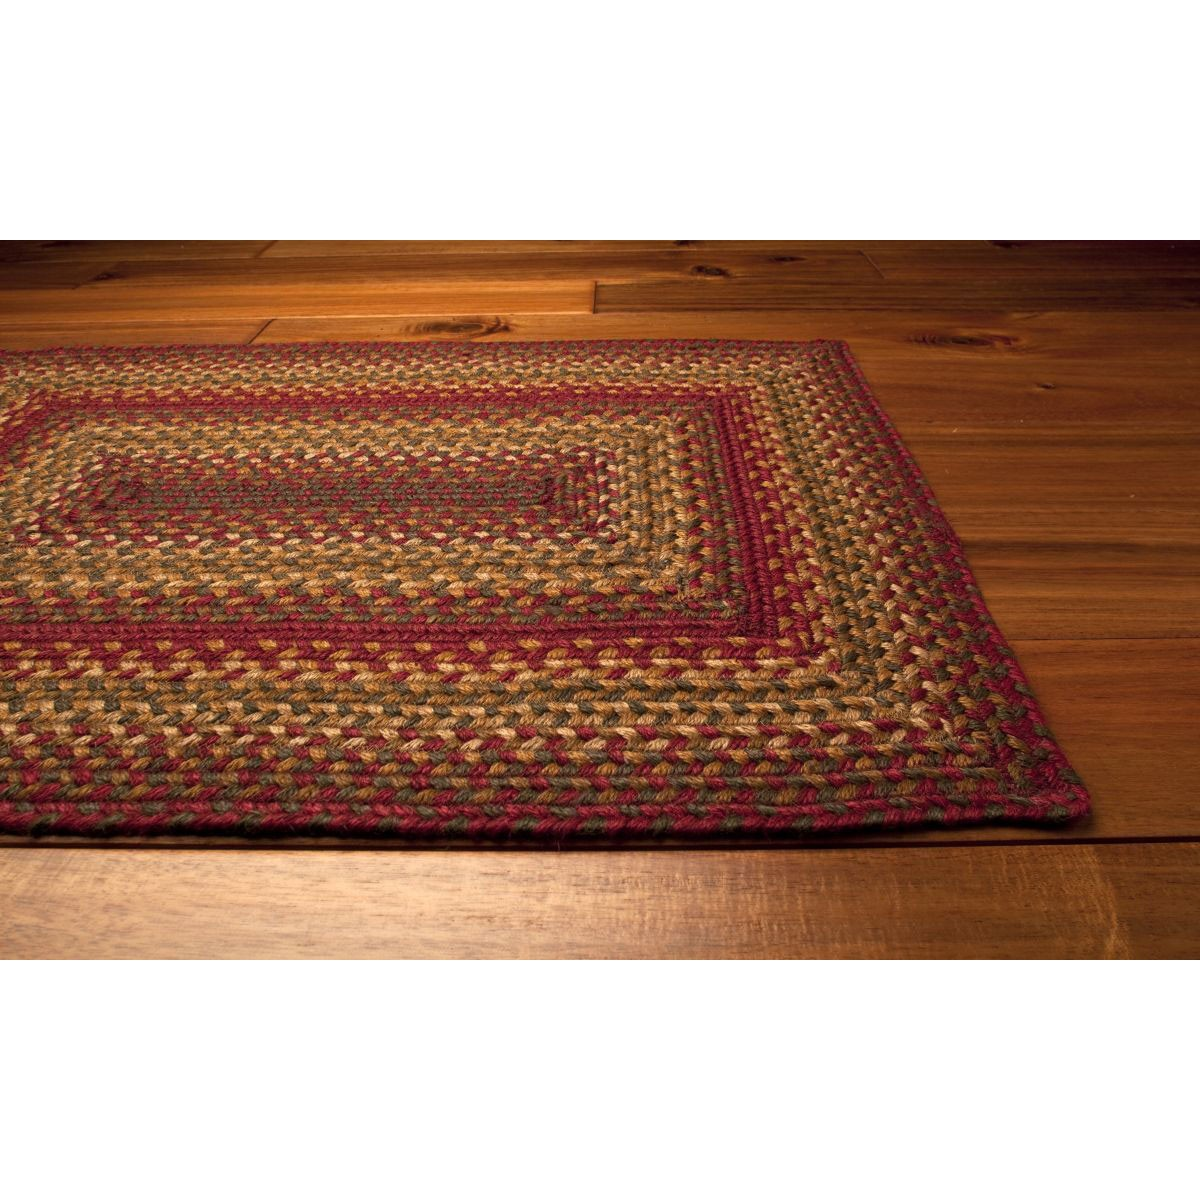 Cider Barn Jute Braided Rugs